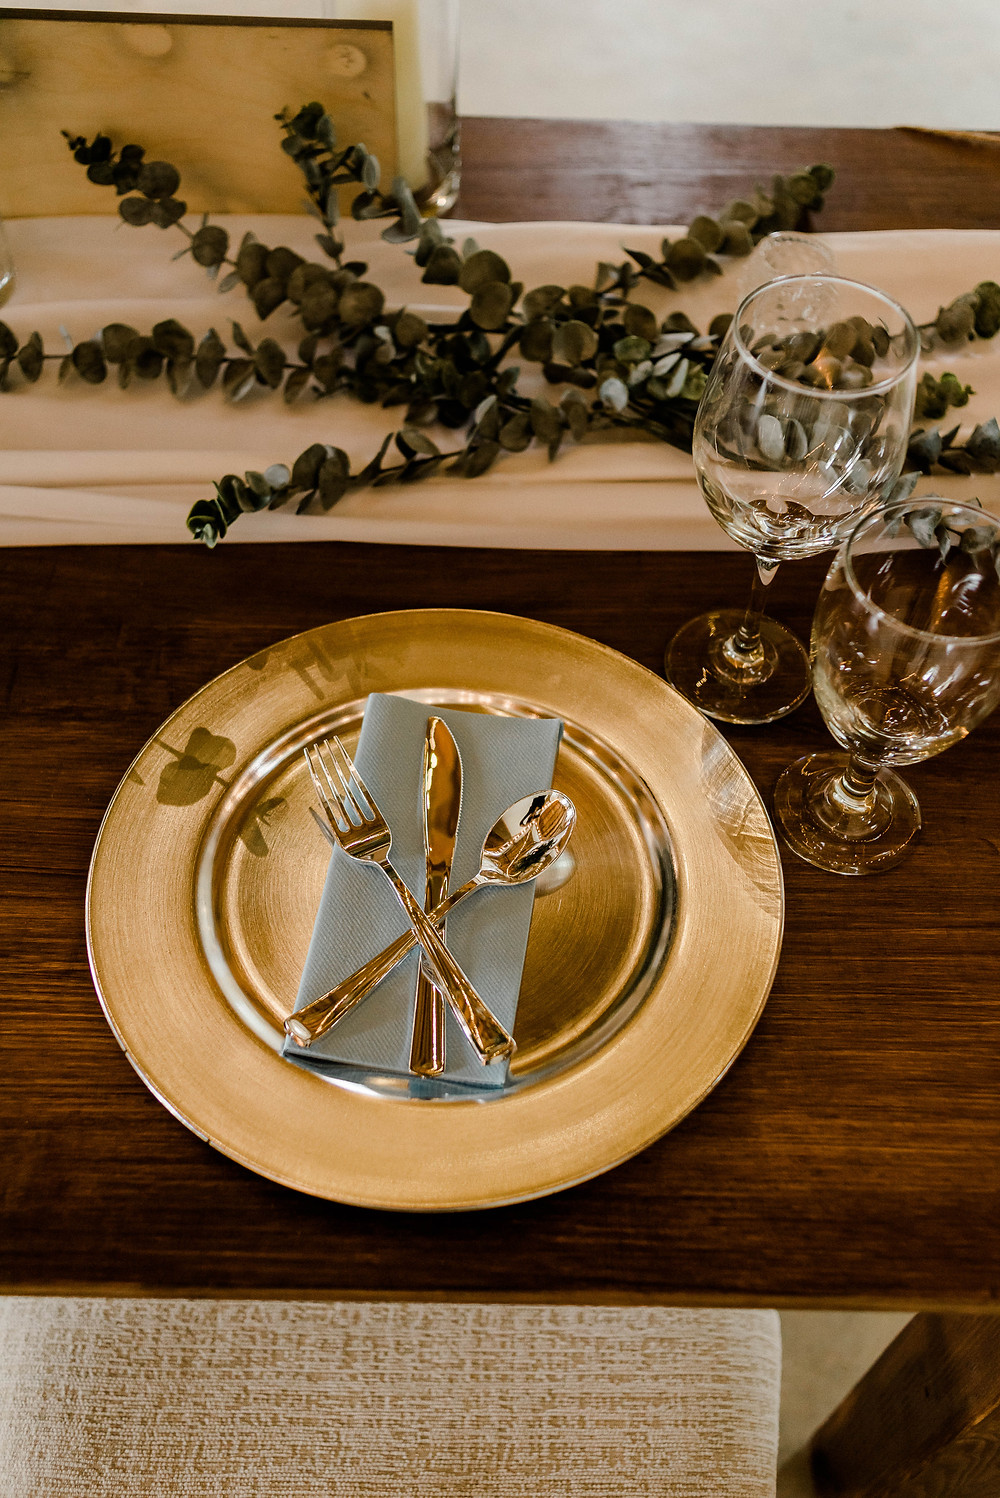 Gold and eucalyptus table setting at the sweetheart table.